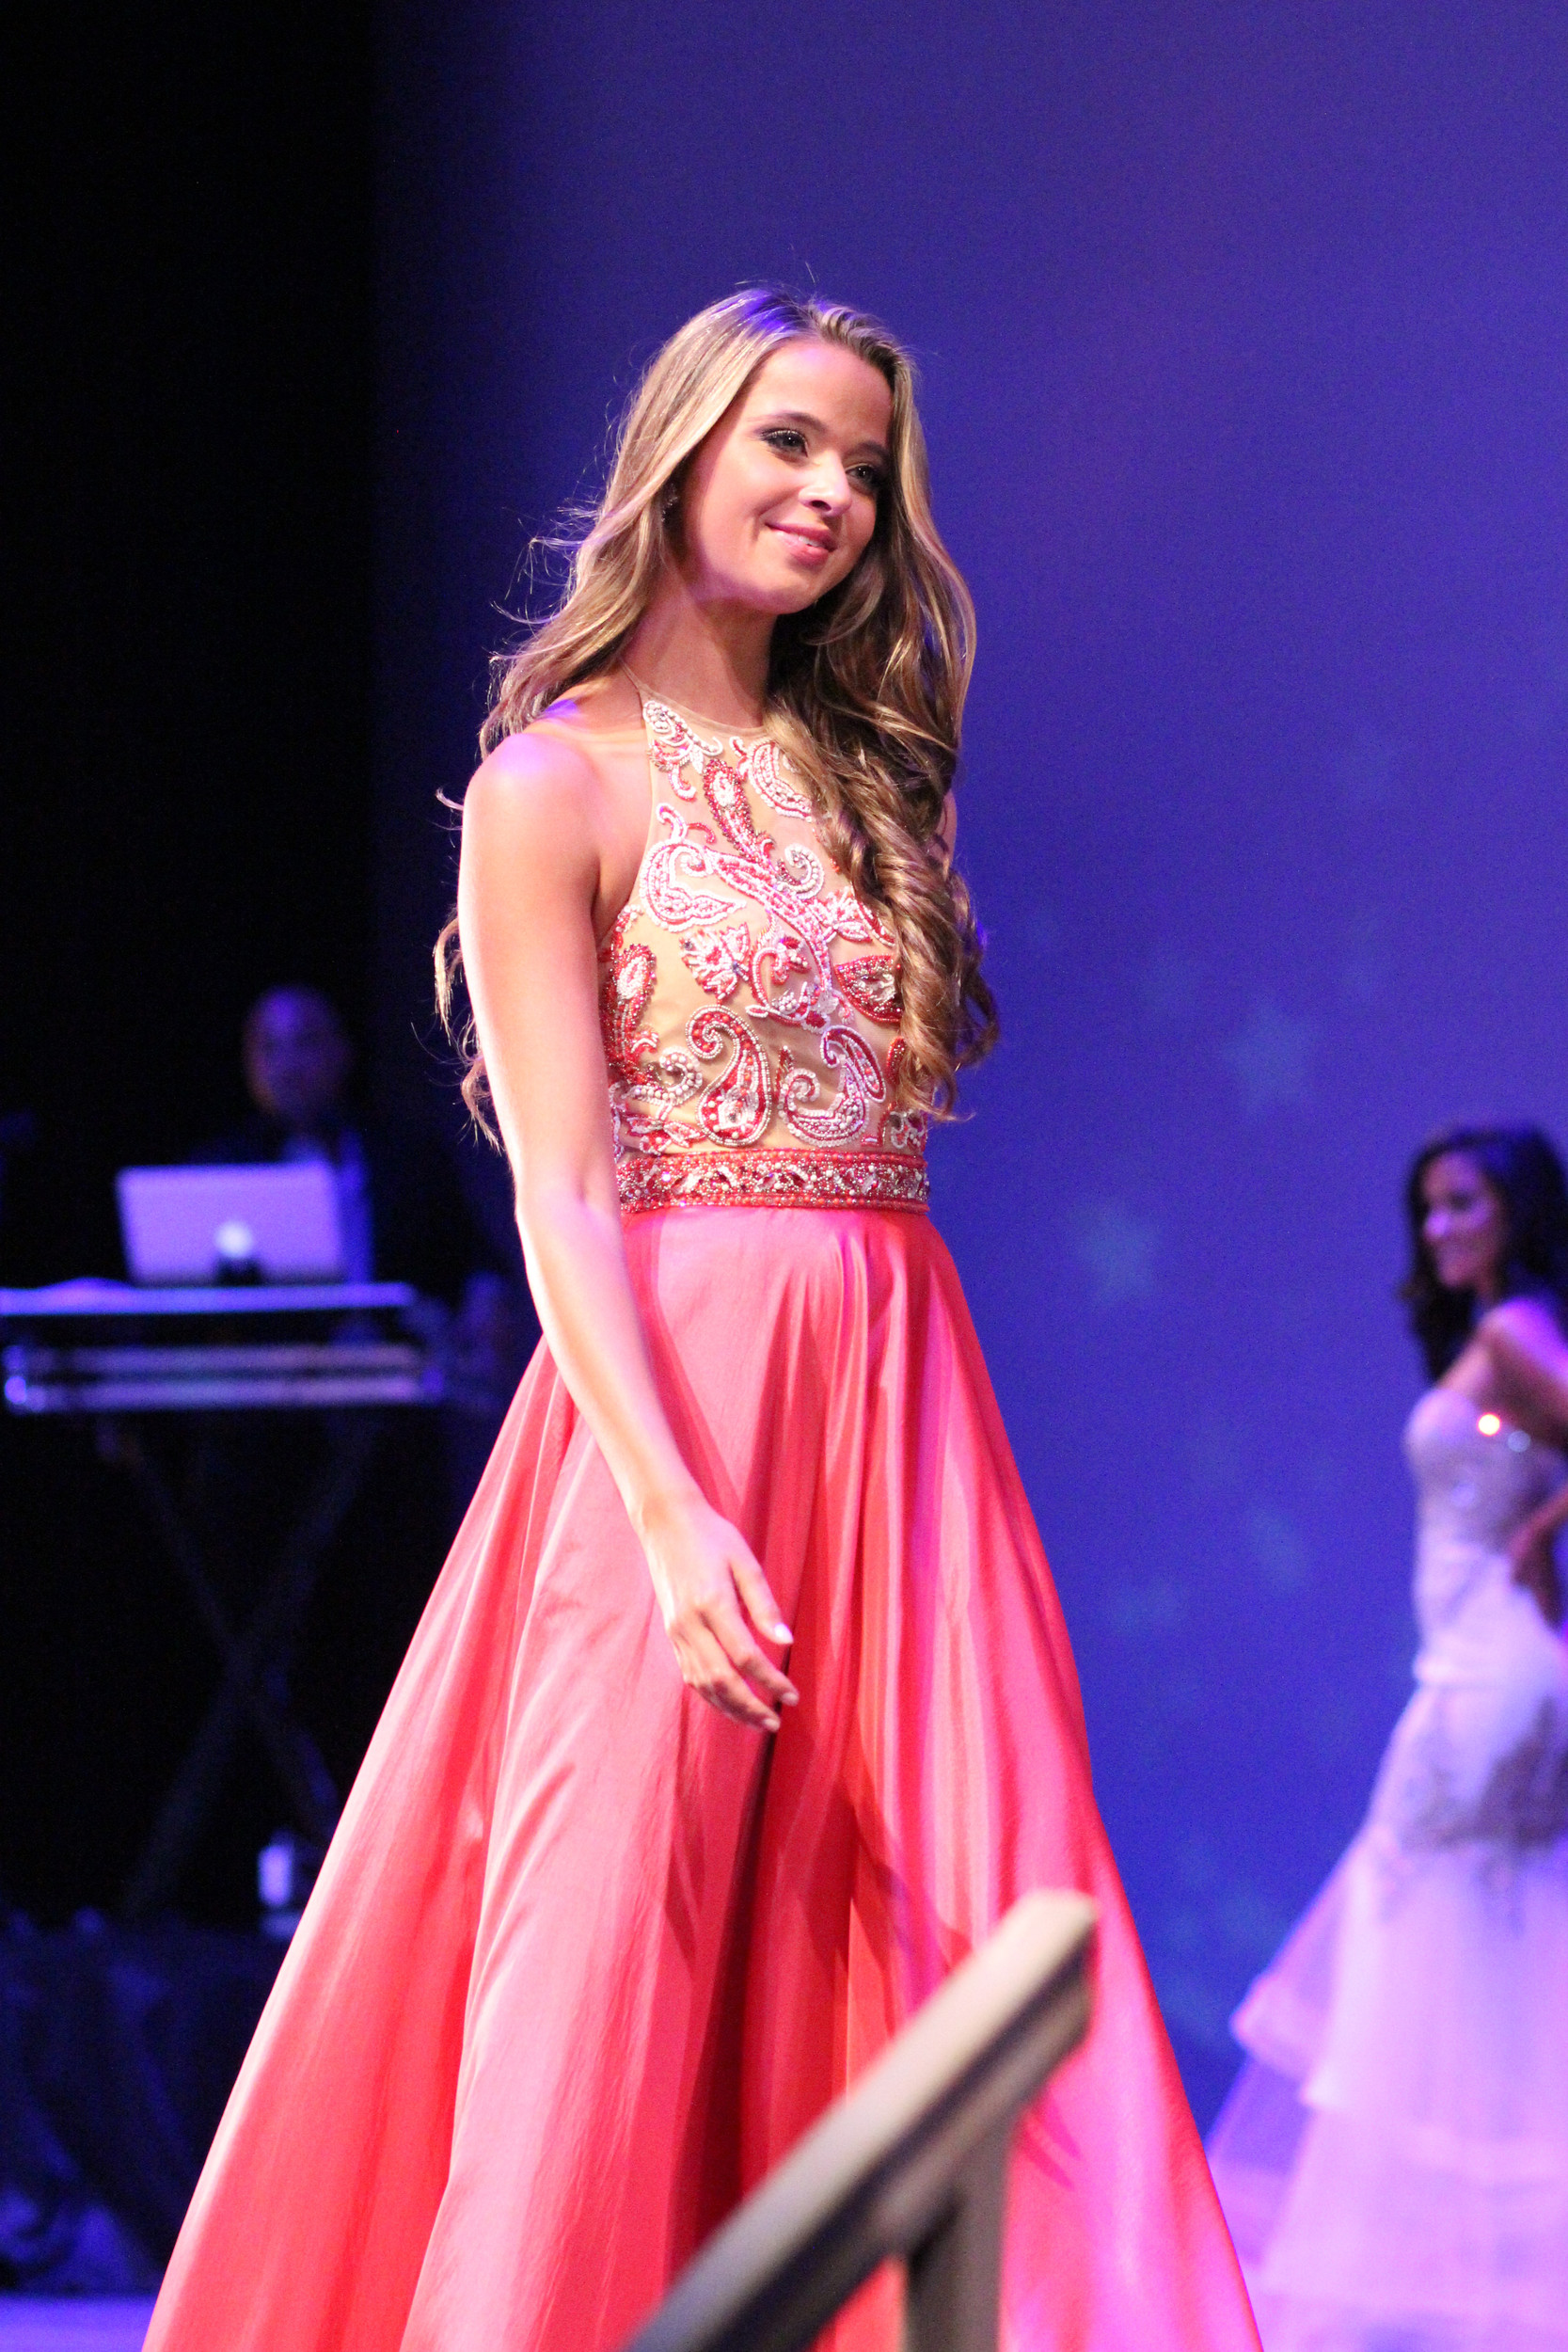 Kaelee Hohmann, 17, of Oyster Bay, was the first to walk the stage in the evening gown competition.